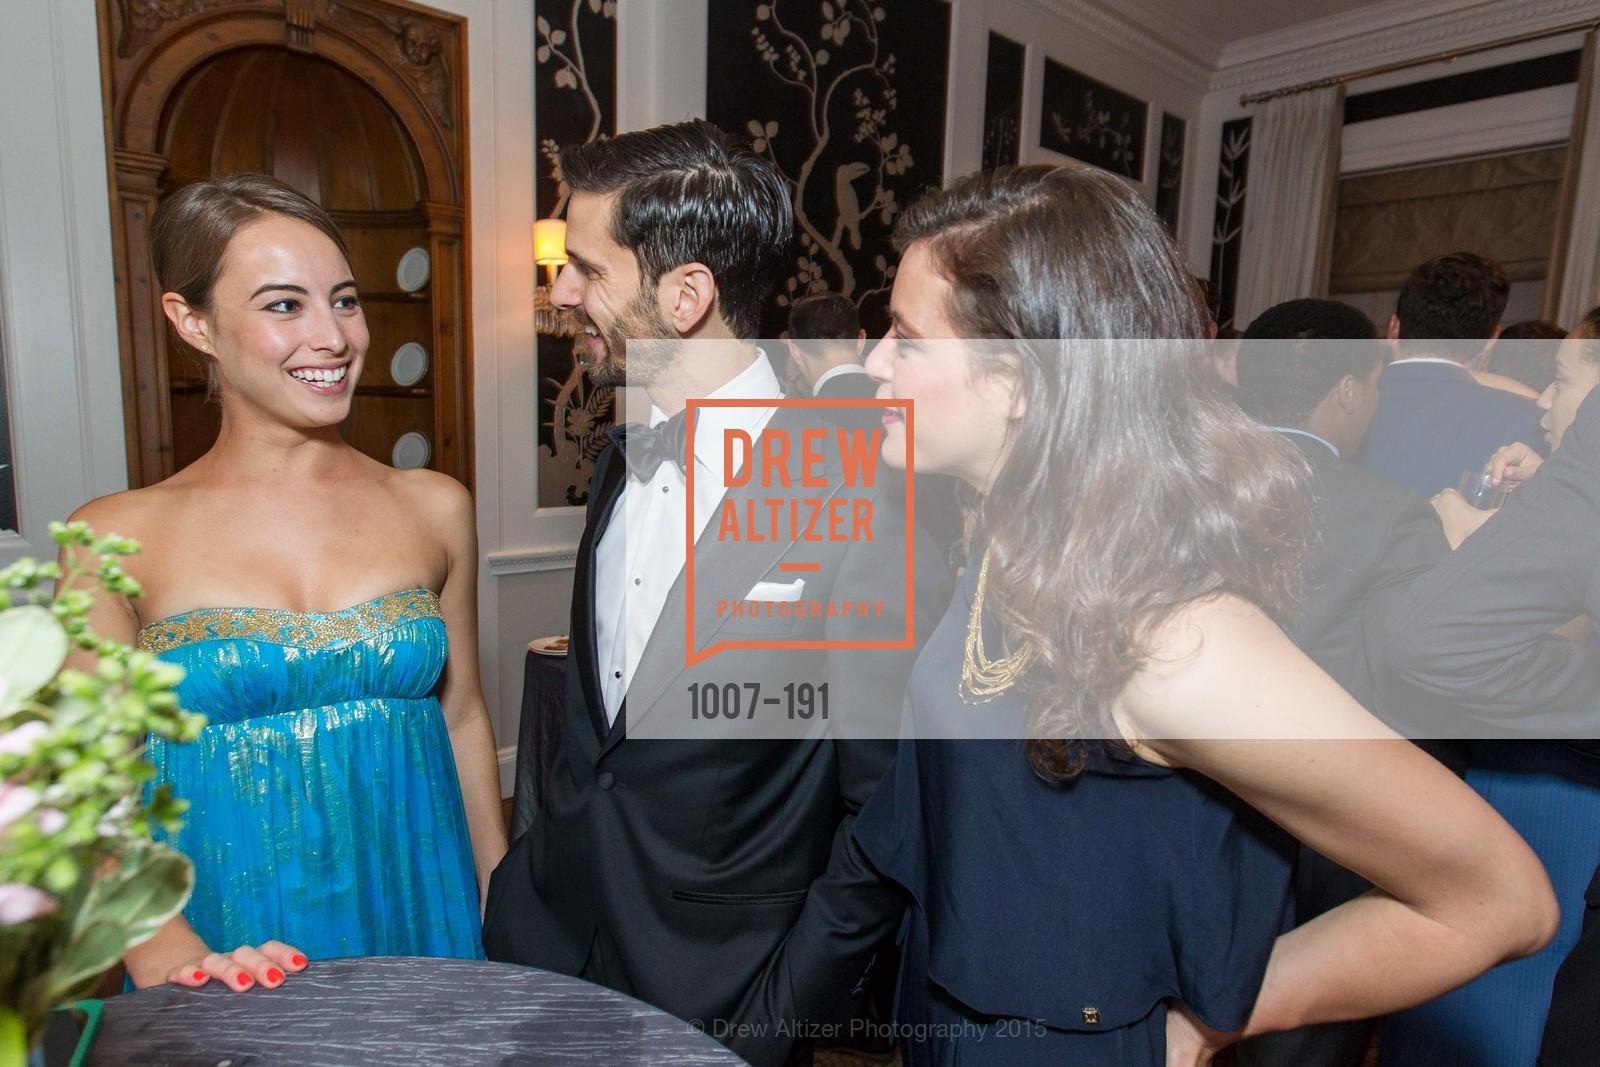 Juliette Carnoy, Brennan Angel, Celine Buell, Spinsters of San Francisco Annual Ball 2015, Penthouse at the Fairmont San Francisco (950 Mason Street). 950 Mason Street, June 28th, 2015,Drew Altizer, Drew Altizer Photography, full-service agency, private events, San Francisco photographer, photographer california